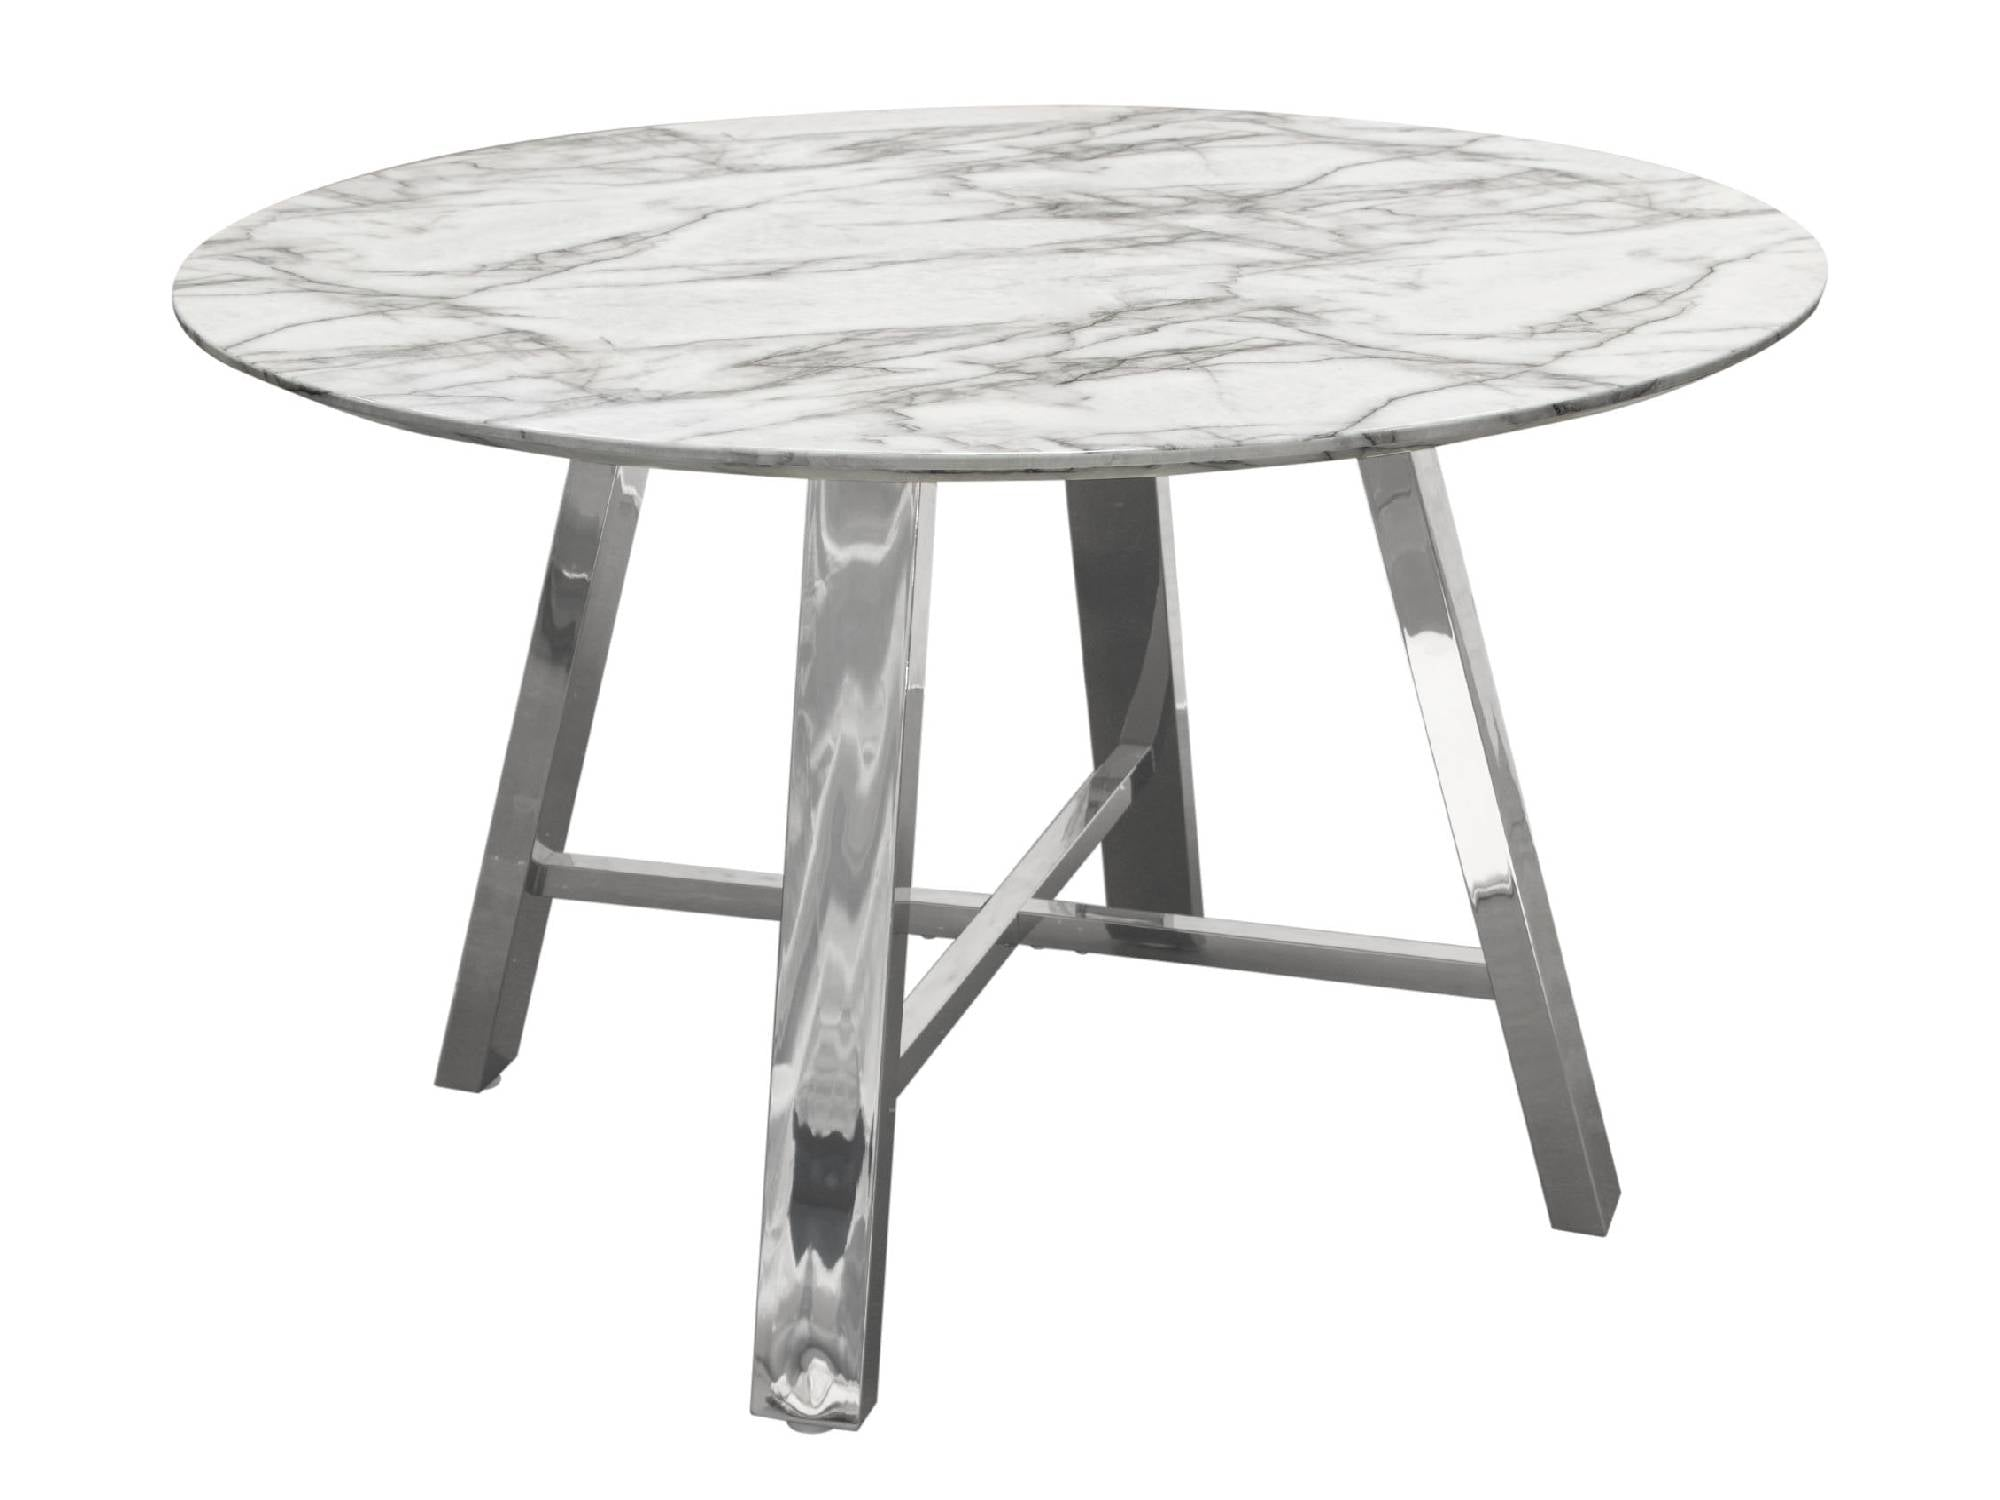 QUARRY DINING TABLE